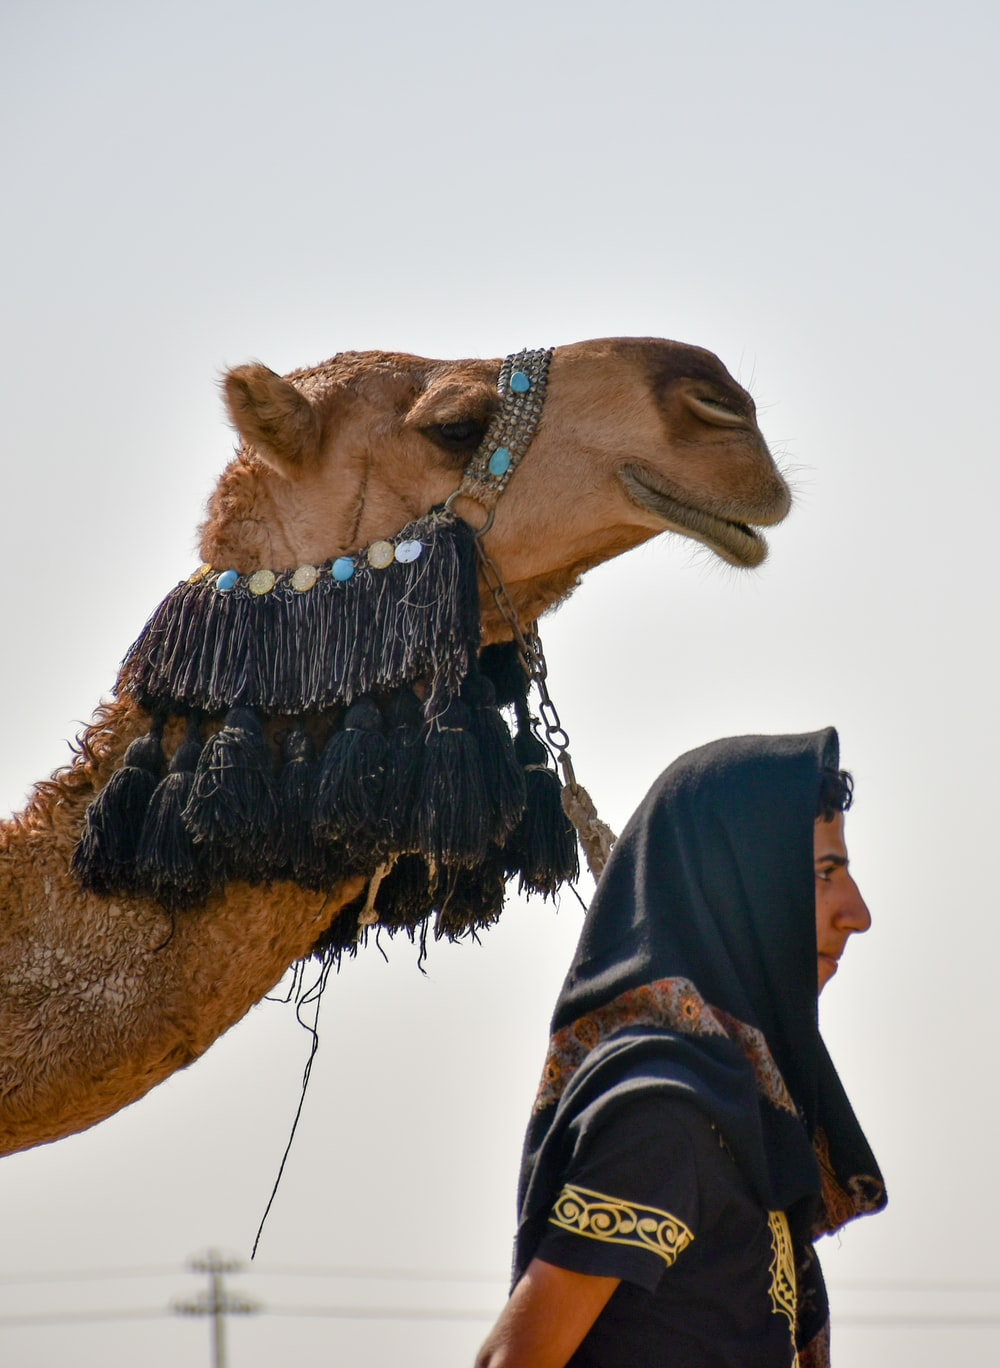 person in black jacket standing beside brown camel